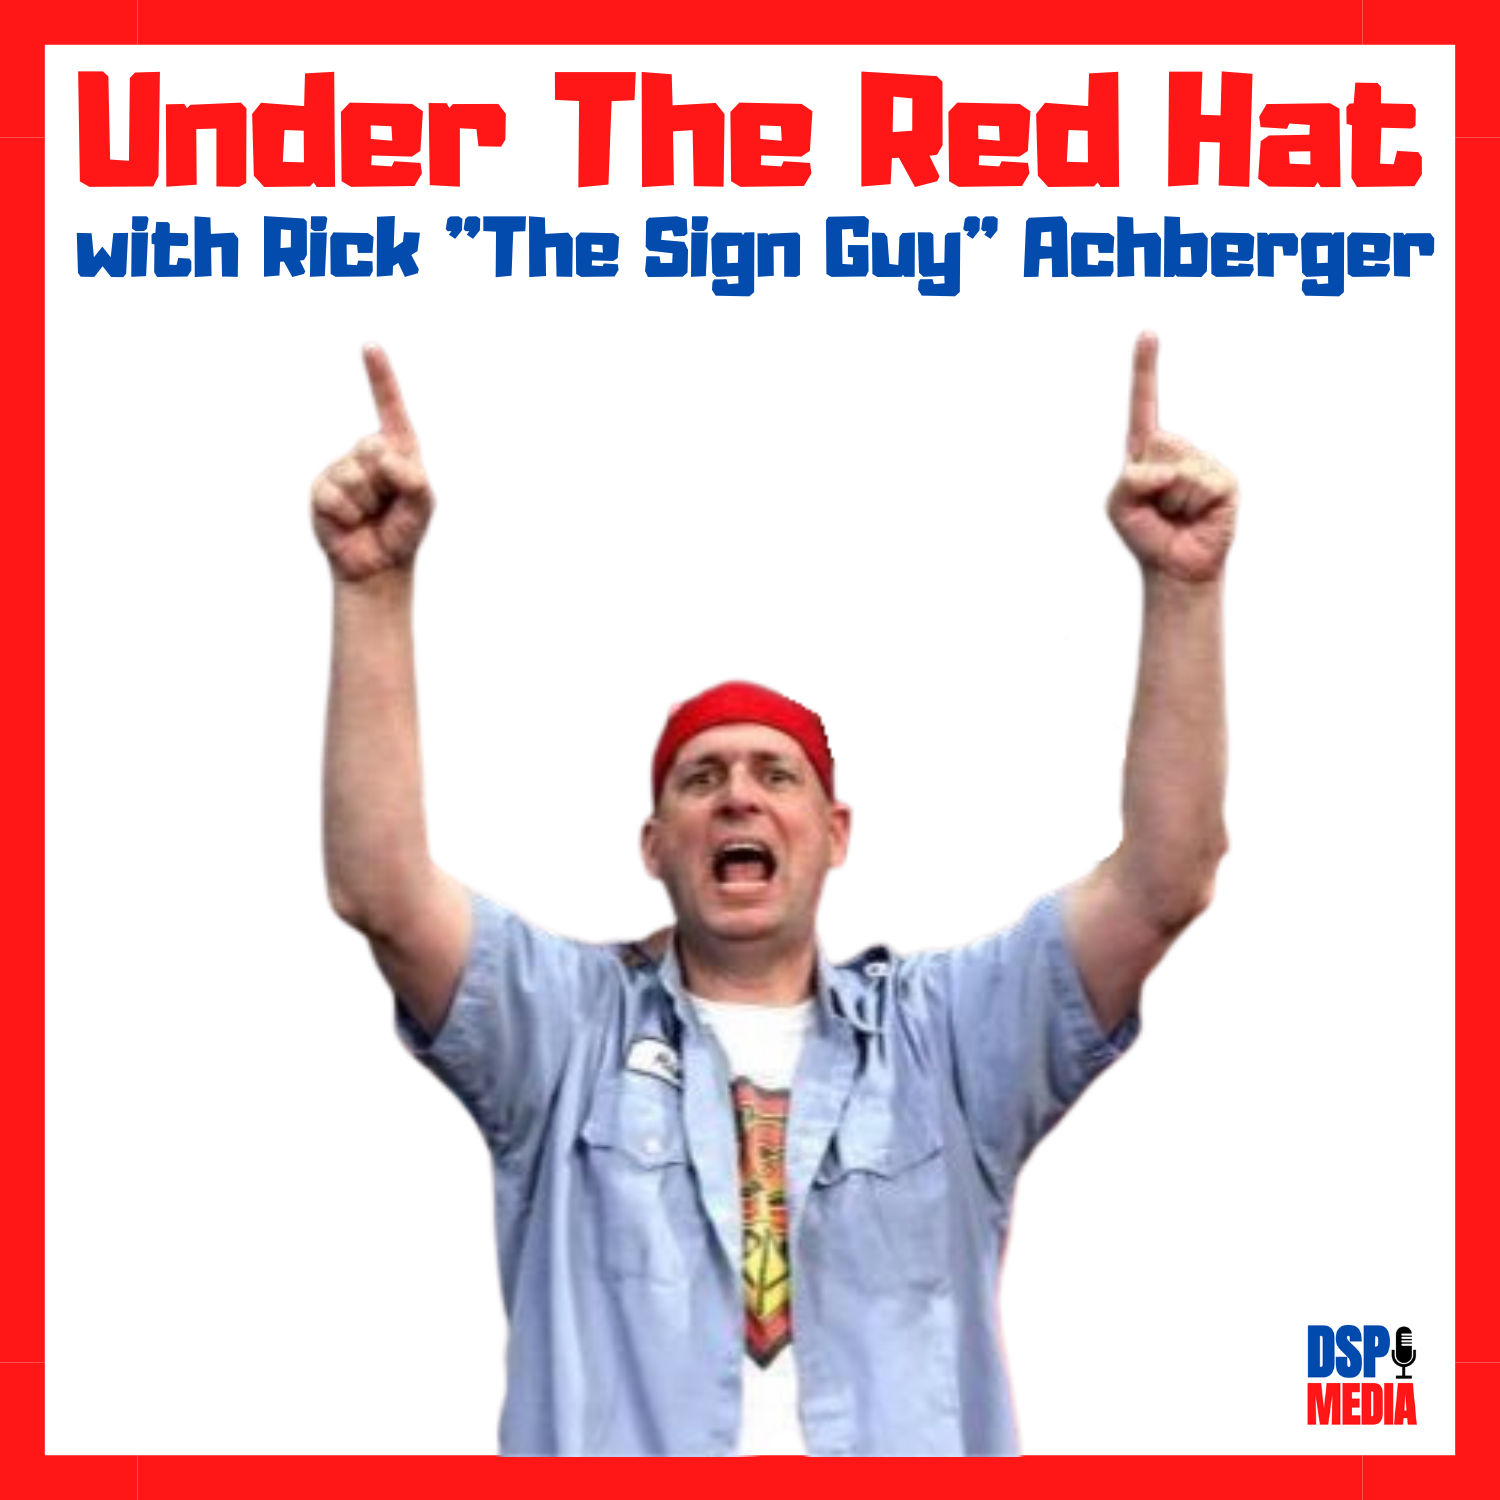 Under The Red Hat